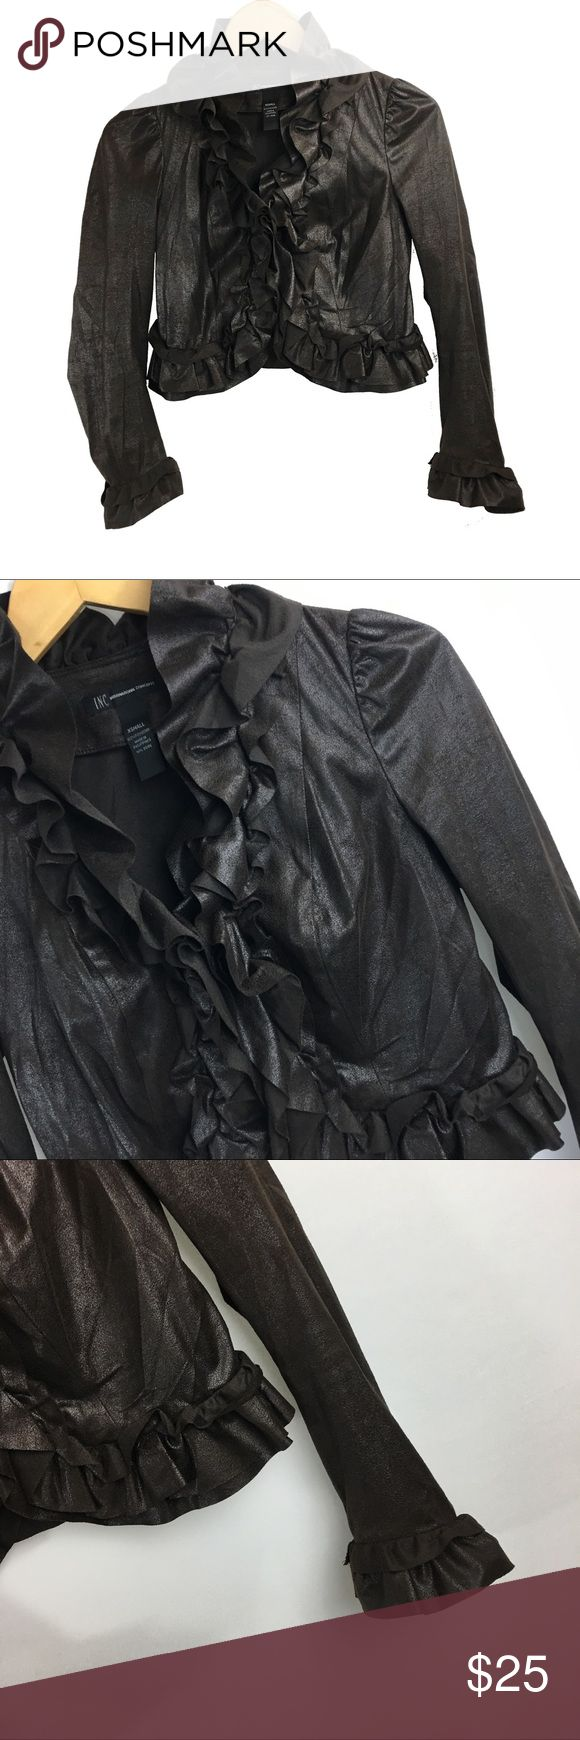 Inc brown ruffle size xsmall bolero blazer jacket **** IF YOU THINK OUR AFFORDABLE PRICES ARE TOO HIGH FOR YOU, MAKE A REASONABLE OFFER ON ANY OF THE ITEMS IN OUR STORE AND WE MAY ACCEPT IT****     - Size: xsmall  - Material: polyester  - Condition: EXCELLENT, like new  - Color: brown  - Pockets: n/a  - Lined: n/a - Closure: hooks  - Pair with:    *Measurements:   Bust:  WAIST: Length:  SLEEVE: Rise: Inseam:   * The more you buy the more you save. Feel free to ask any questions. Thank you…